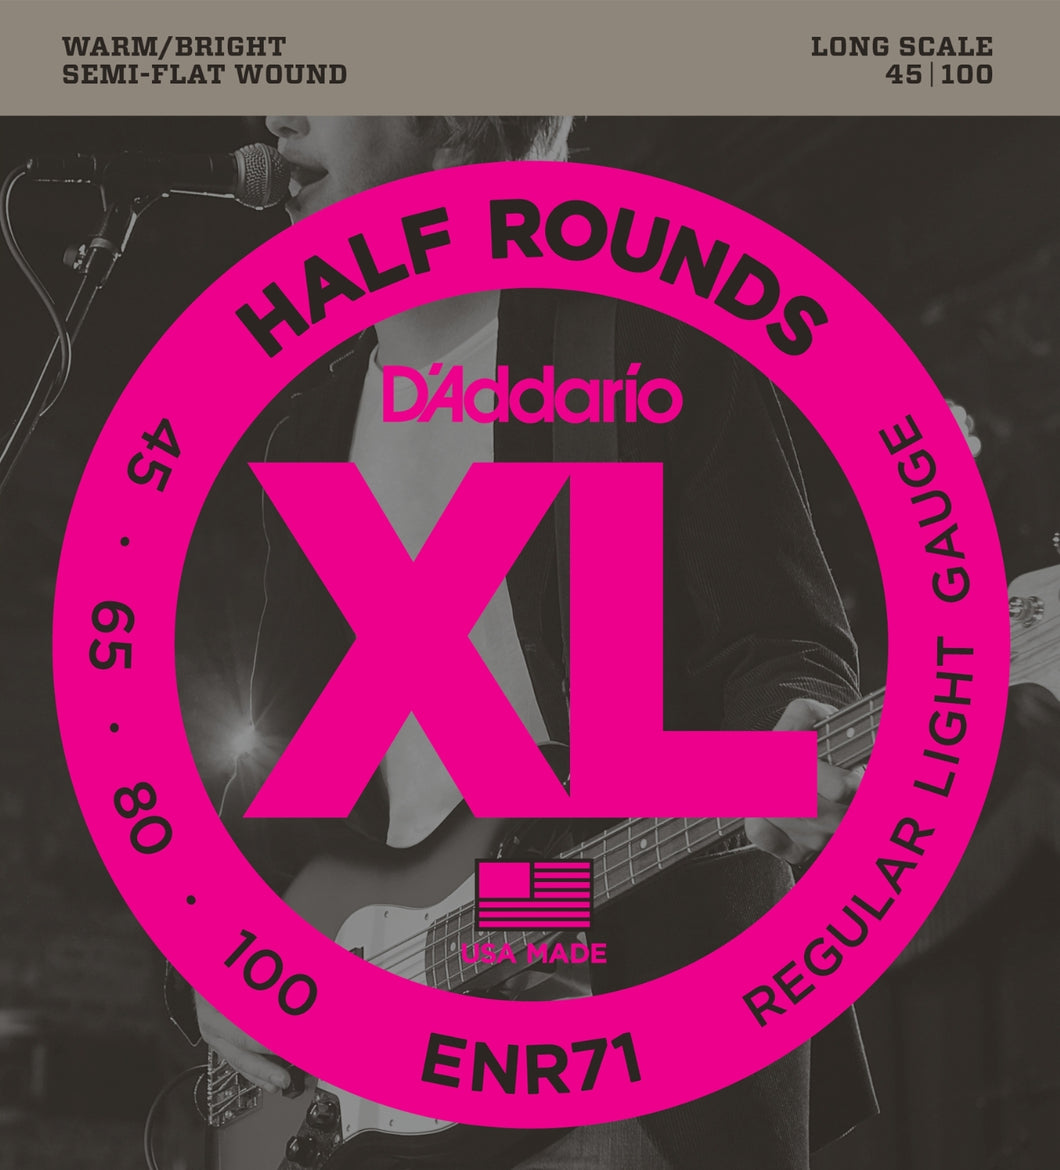 D'Addario ENR71 XL Half Rounds Regular Light Long Scale Bass Strings